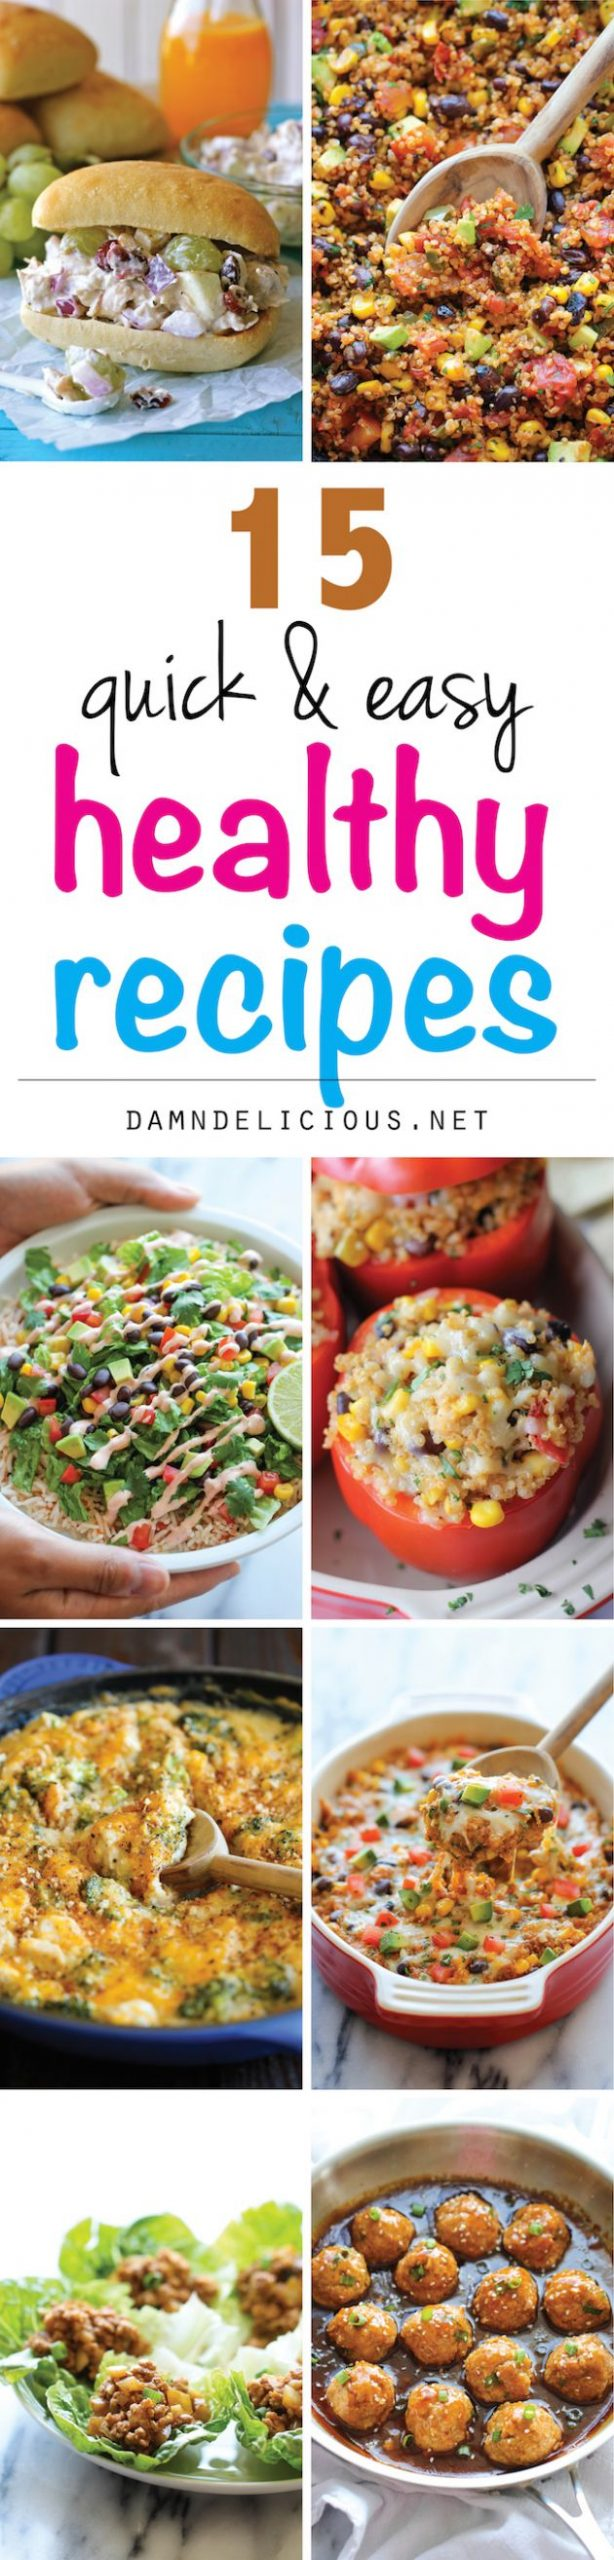 12 Quick and Easy Healthy Recipes - Damn Delicious - Healthy Recipes That Taste Good